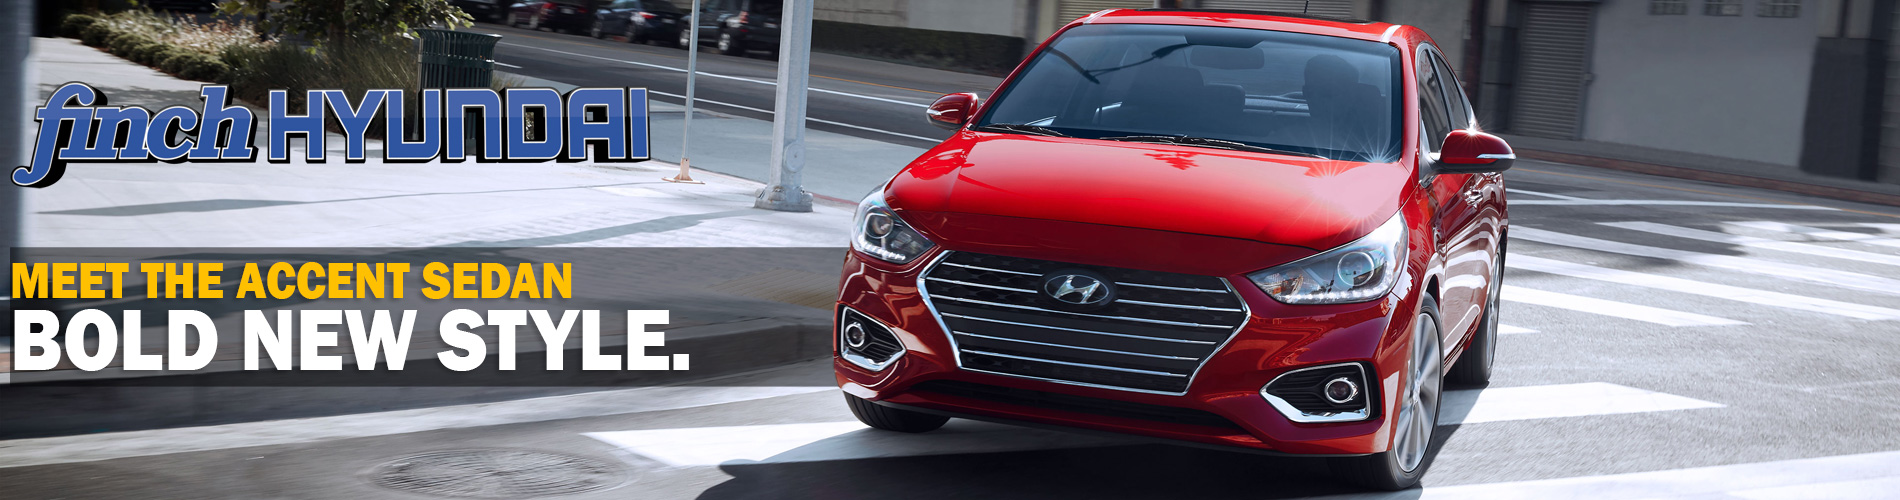 Meet the bold new style of the redesigned 2018 Hyundai Accent Sedan in London Ontario